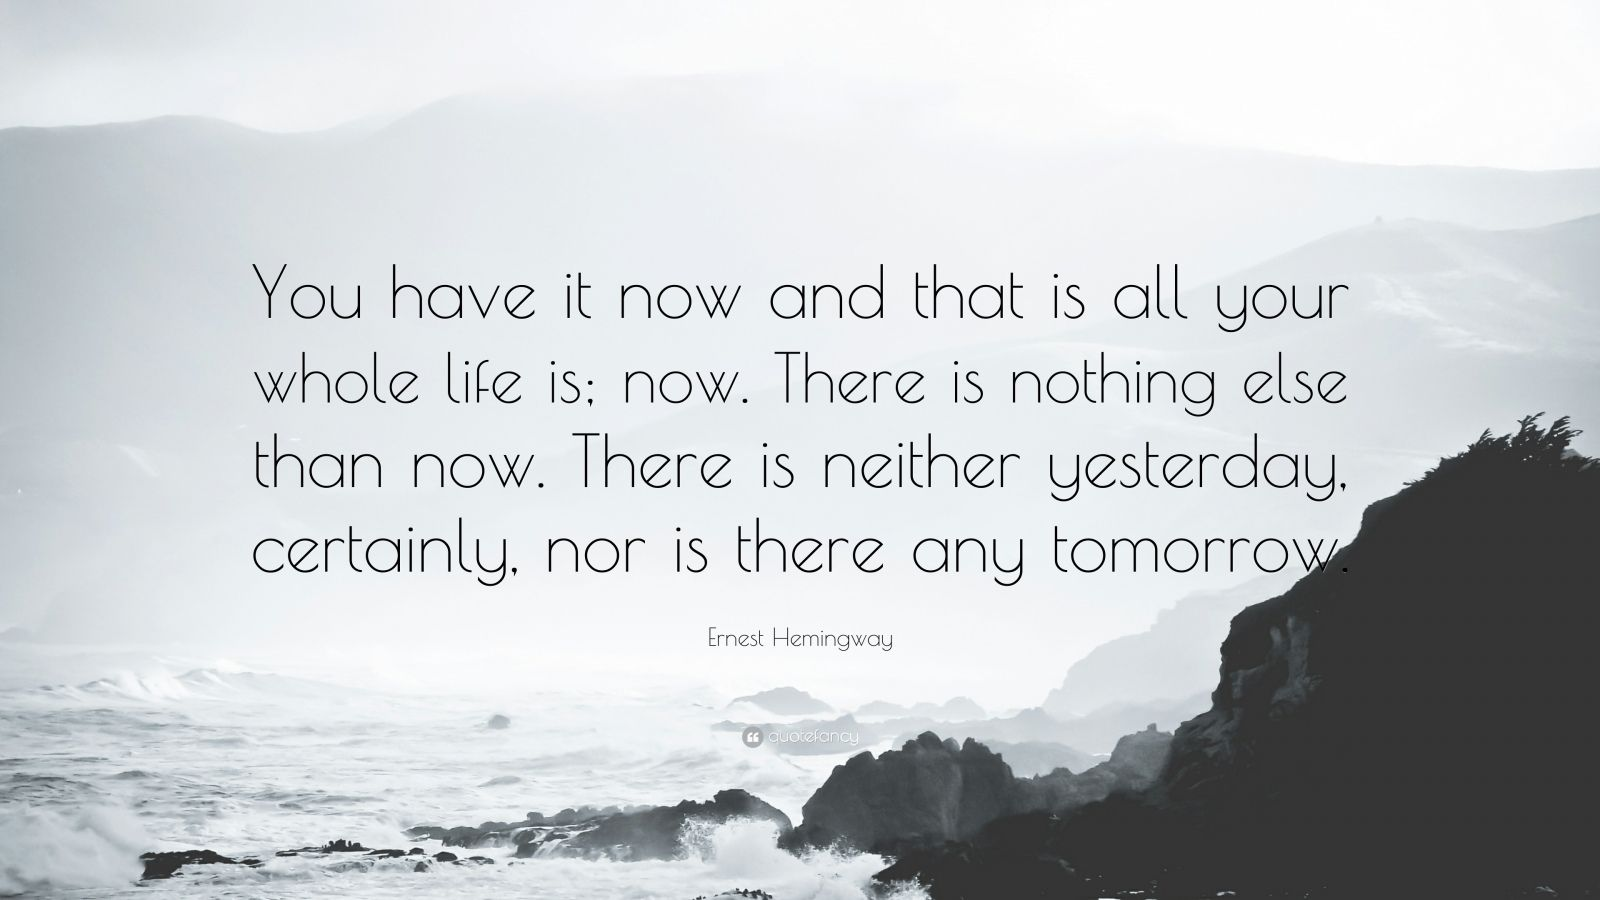 """Ernest Hemingway Quote: """"You have it now and that is all your whole life is; now. There is nothing else than now. There is neither yesterday, certainly, nor is there any tomorrow."""""""